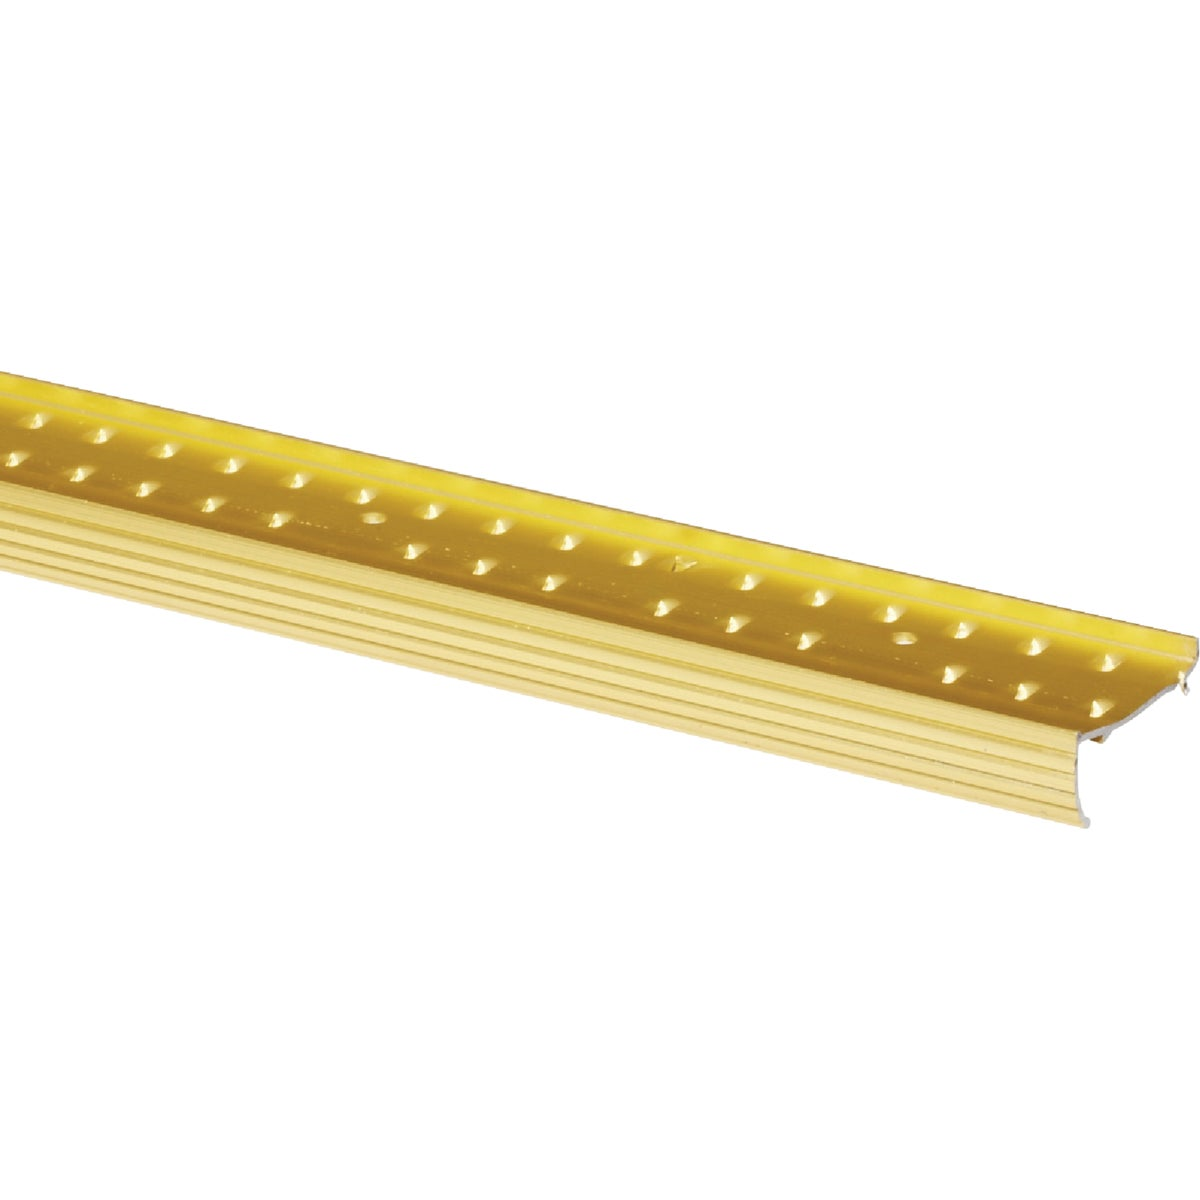 "1-3/8""X3' GOLD CLAMPDOWN - H70FB/3DI by Thermwell Prods Co"